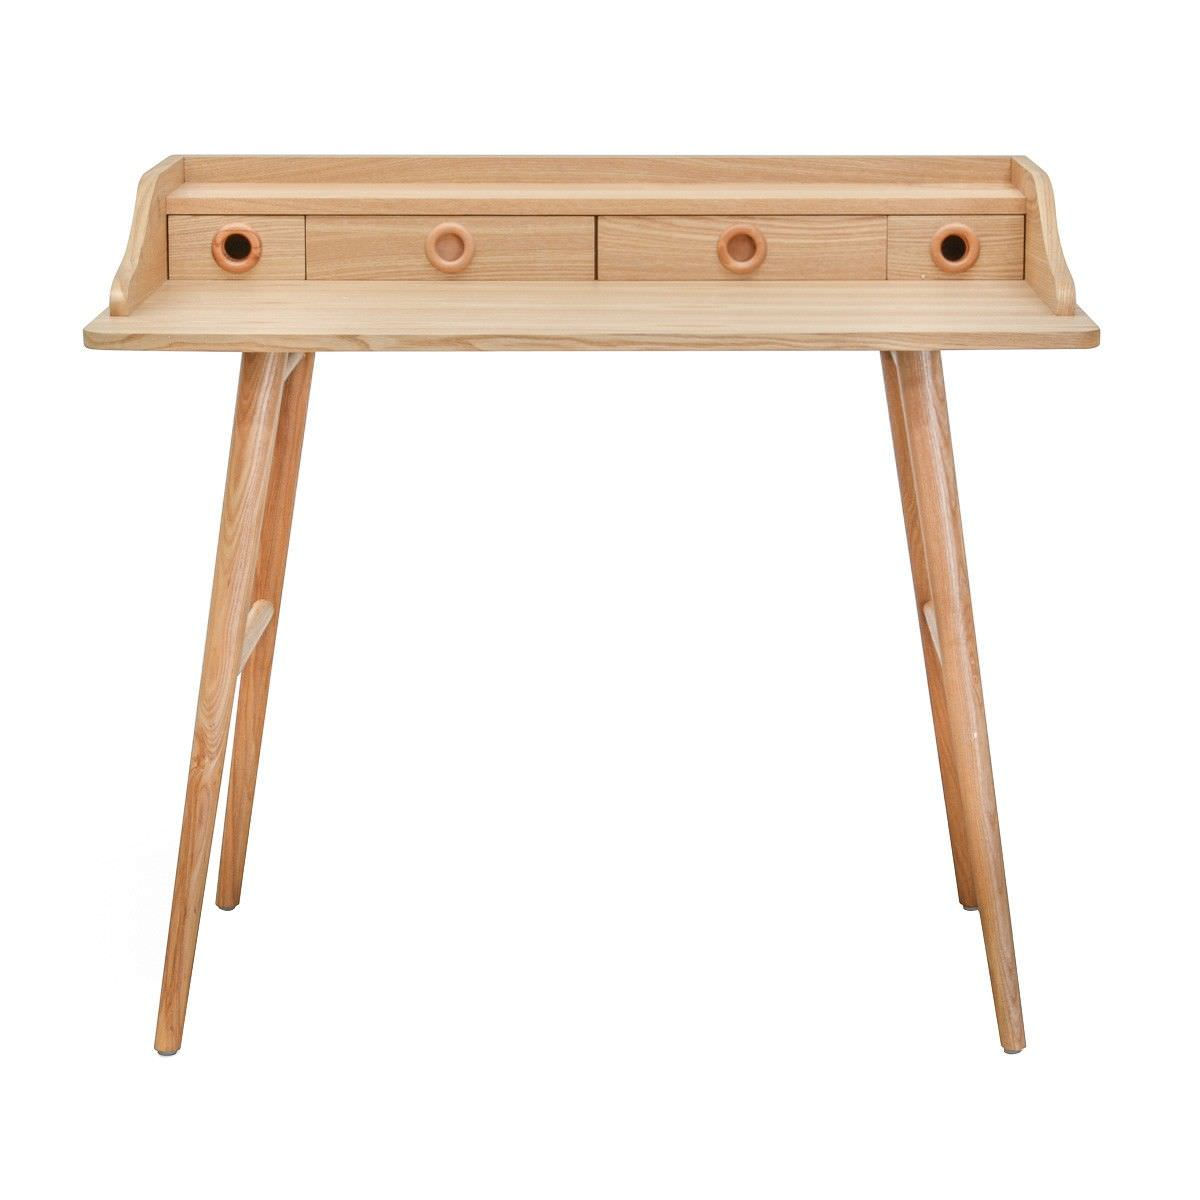 Venessa Wooden Secretary Desk, 100cm, Natural